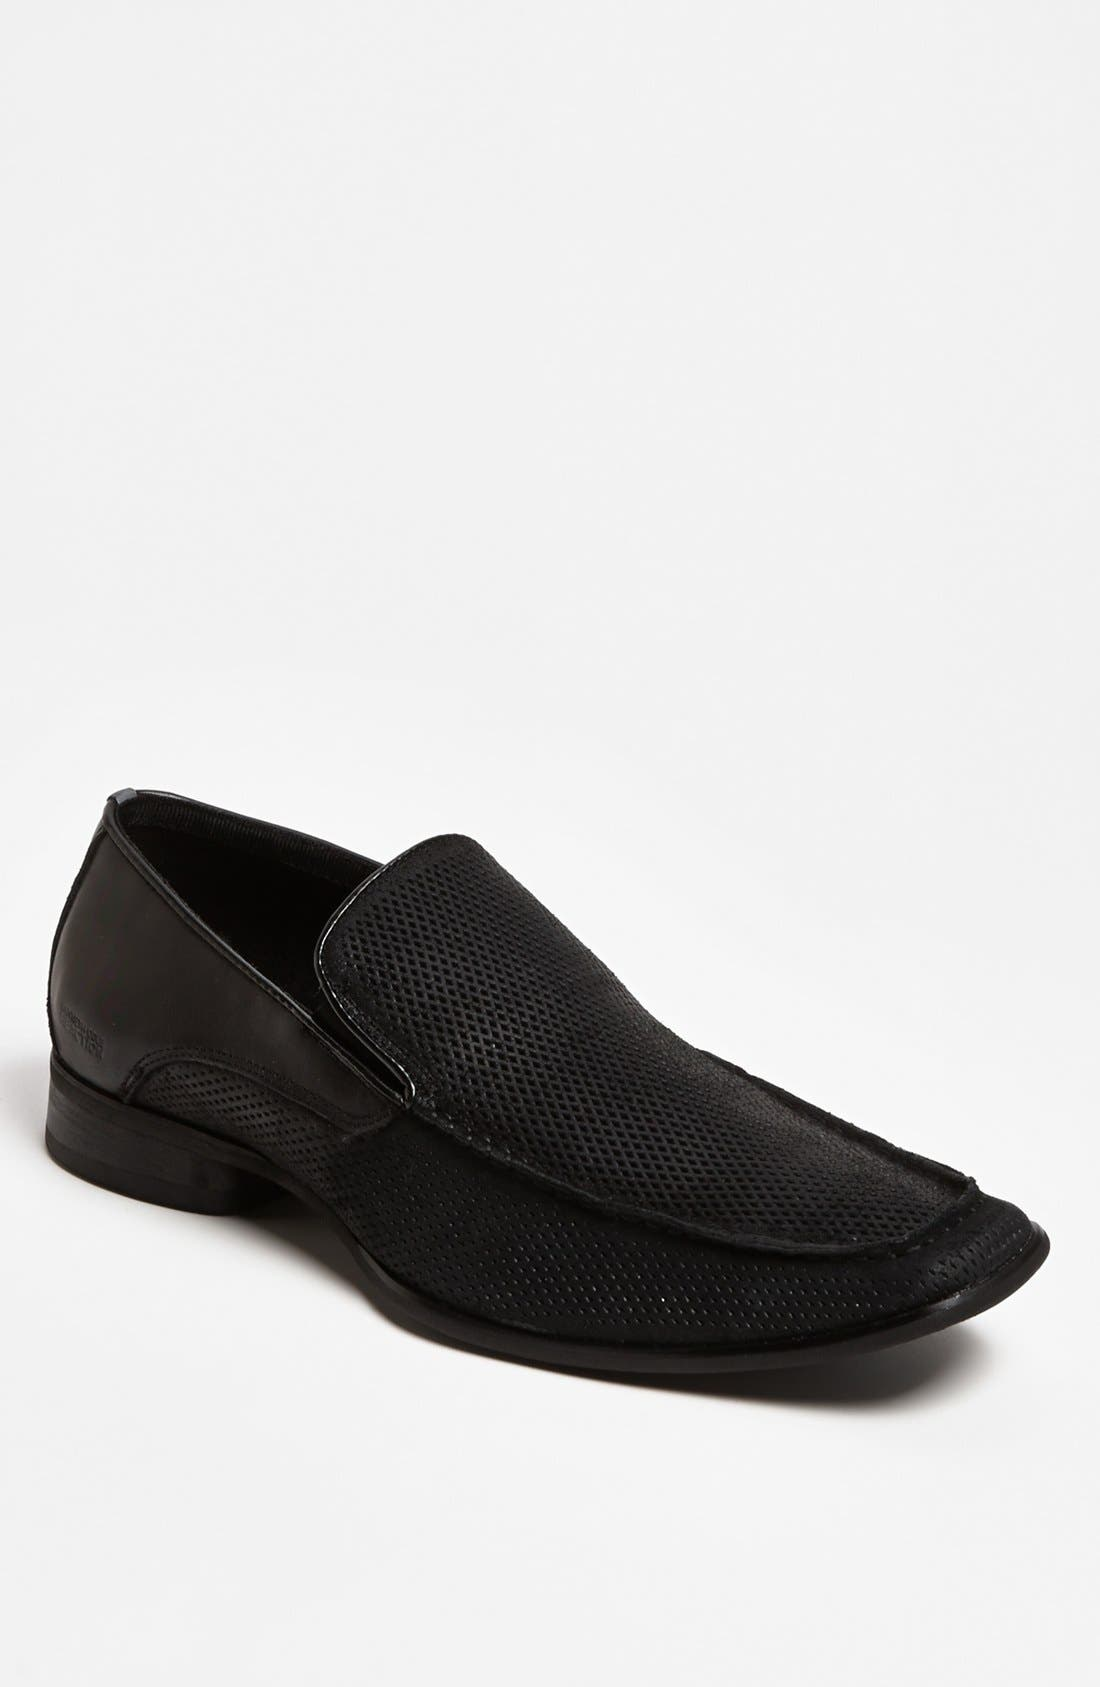 Alternate Image 1 Selected - Kenneth Cole Reaction 'Note Worthy' Venetian Loafer